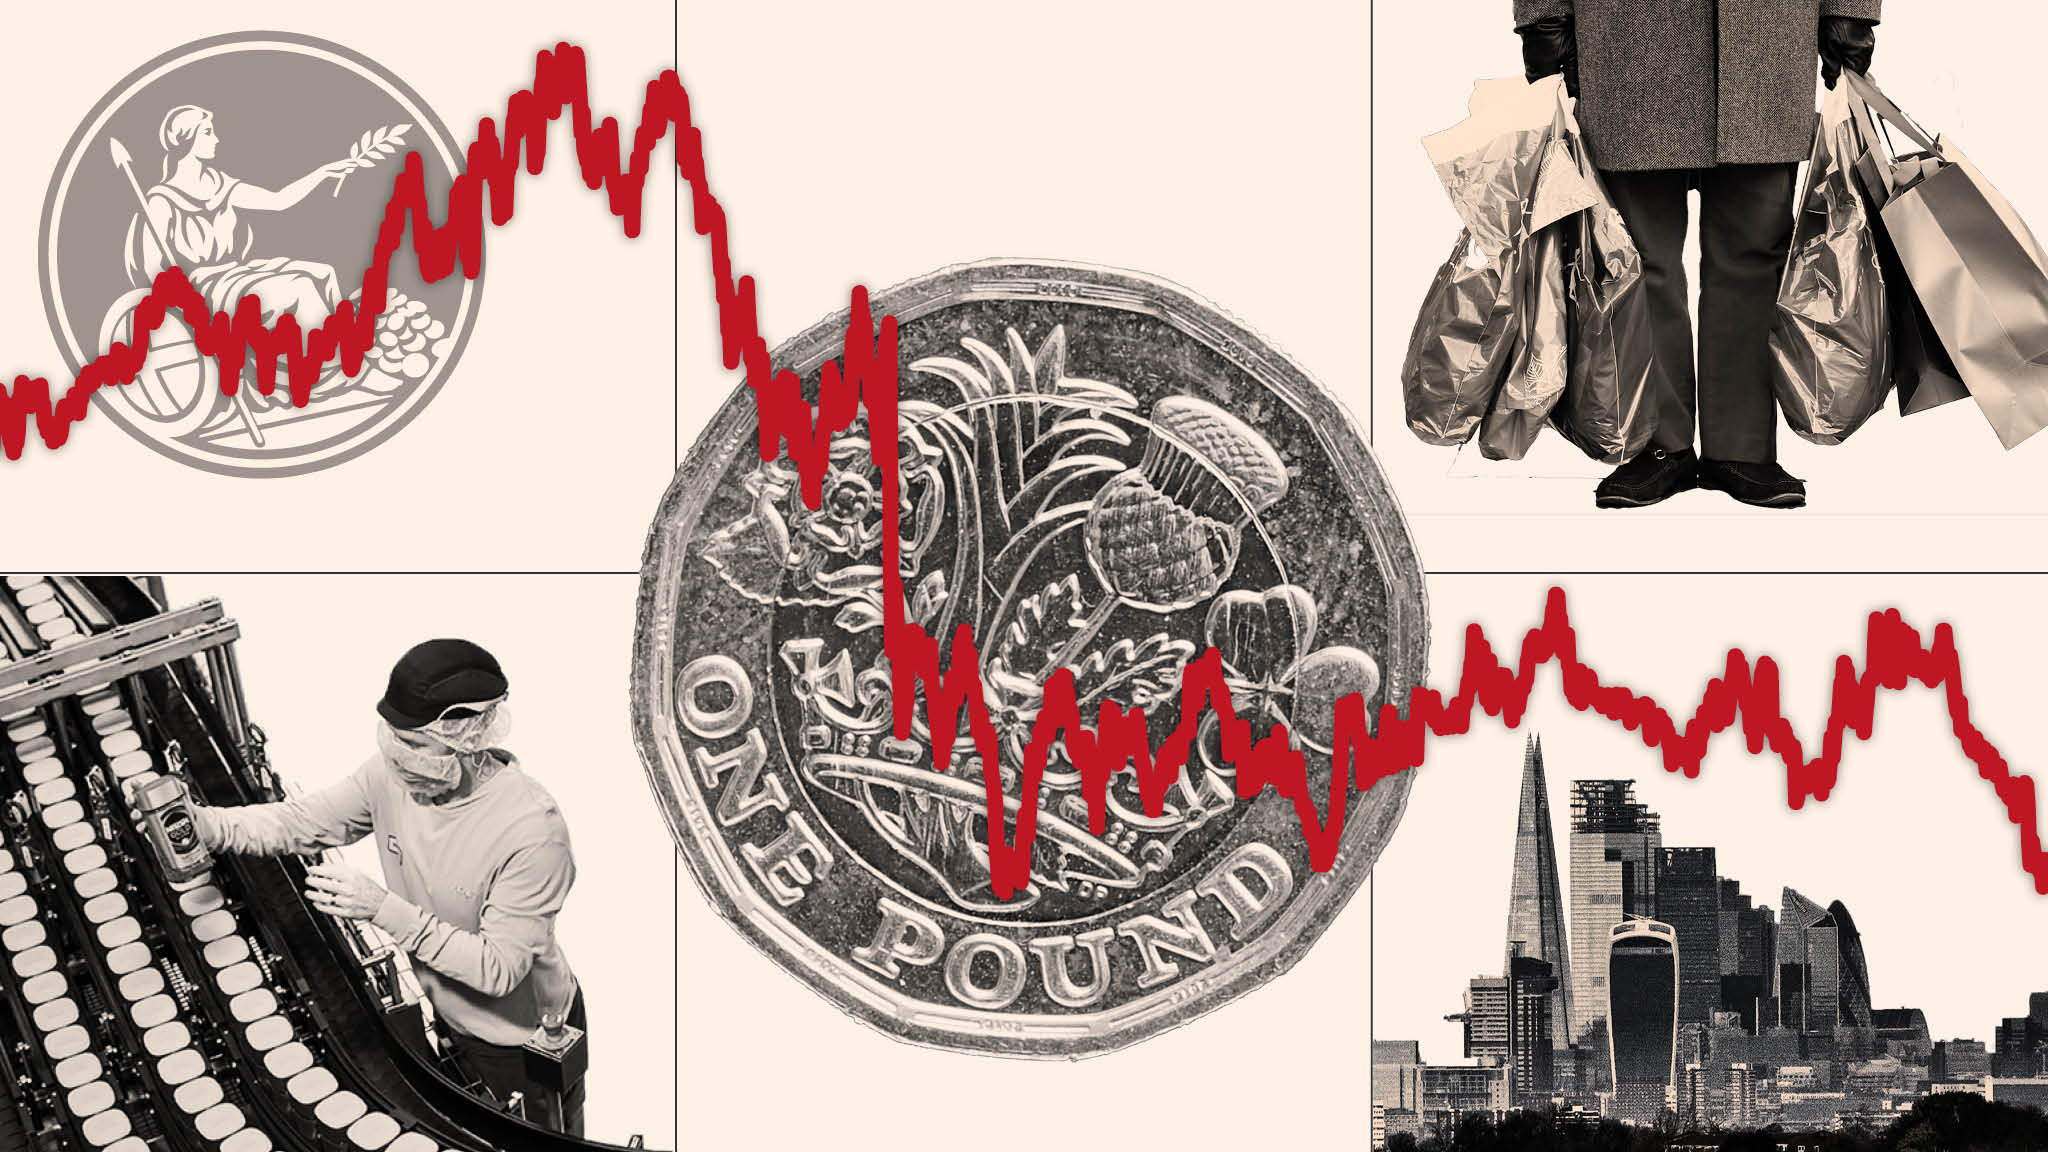 On the brink: Britain's economy braces for Brexit 'shock'